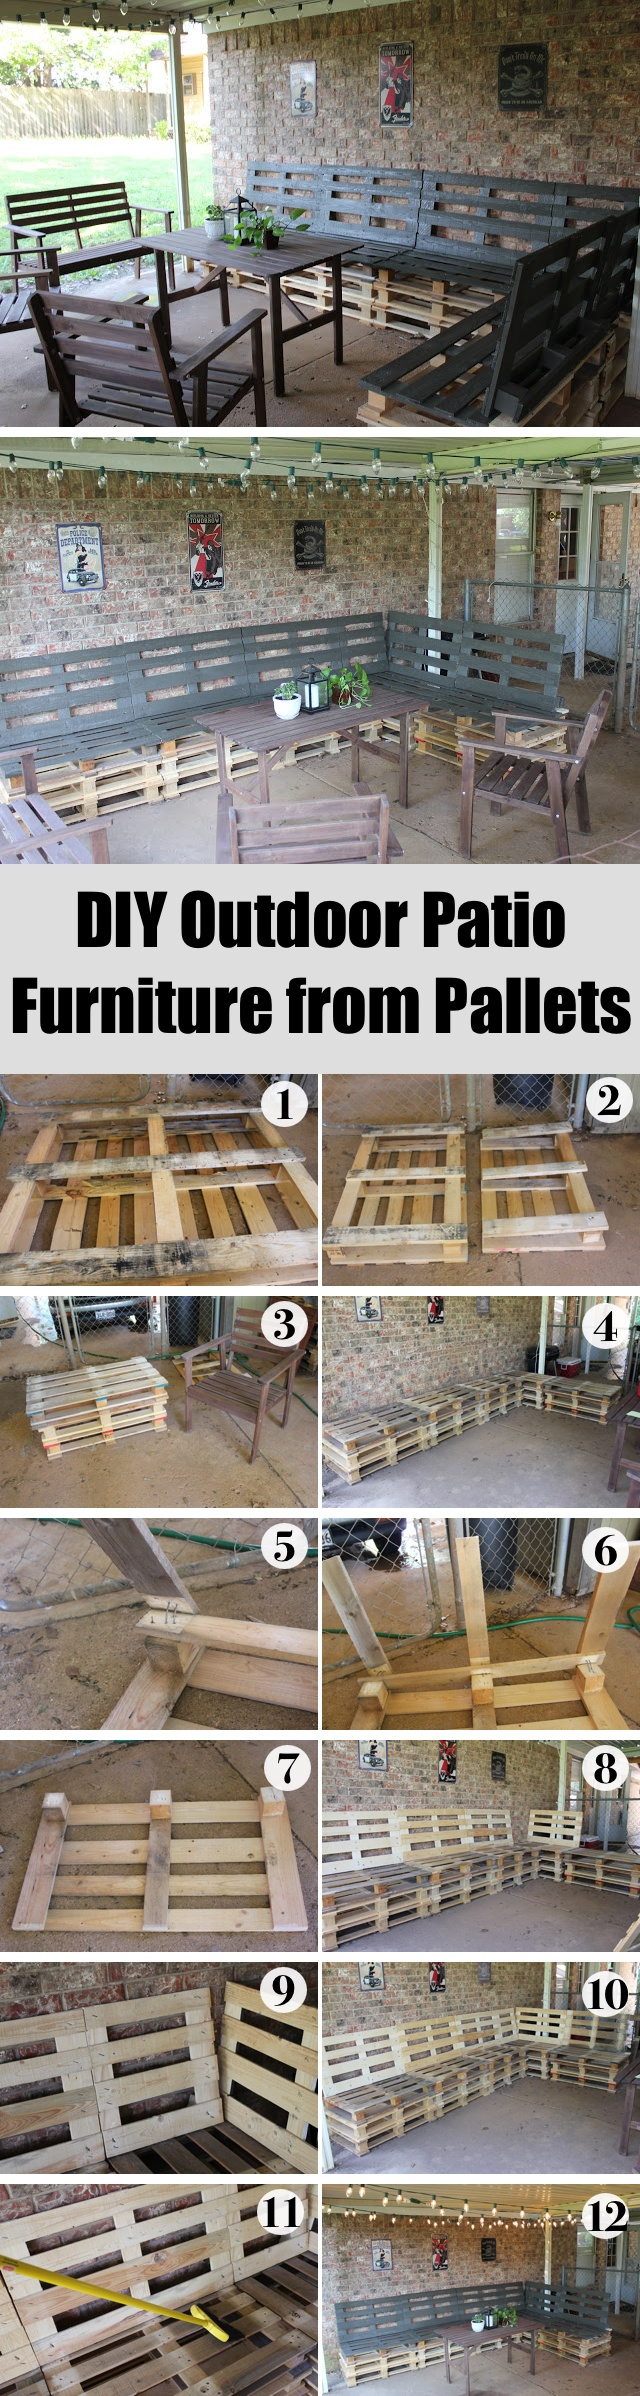 outdoor pallet furniture ideas. DIY Outdoor Patio Furniture From Pallets Pallet Ideas L